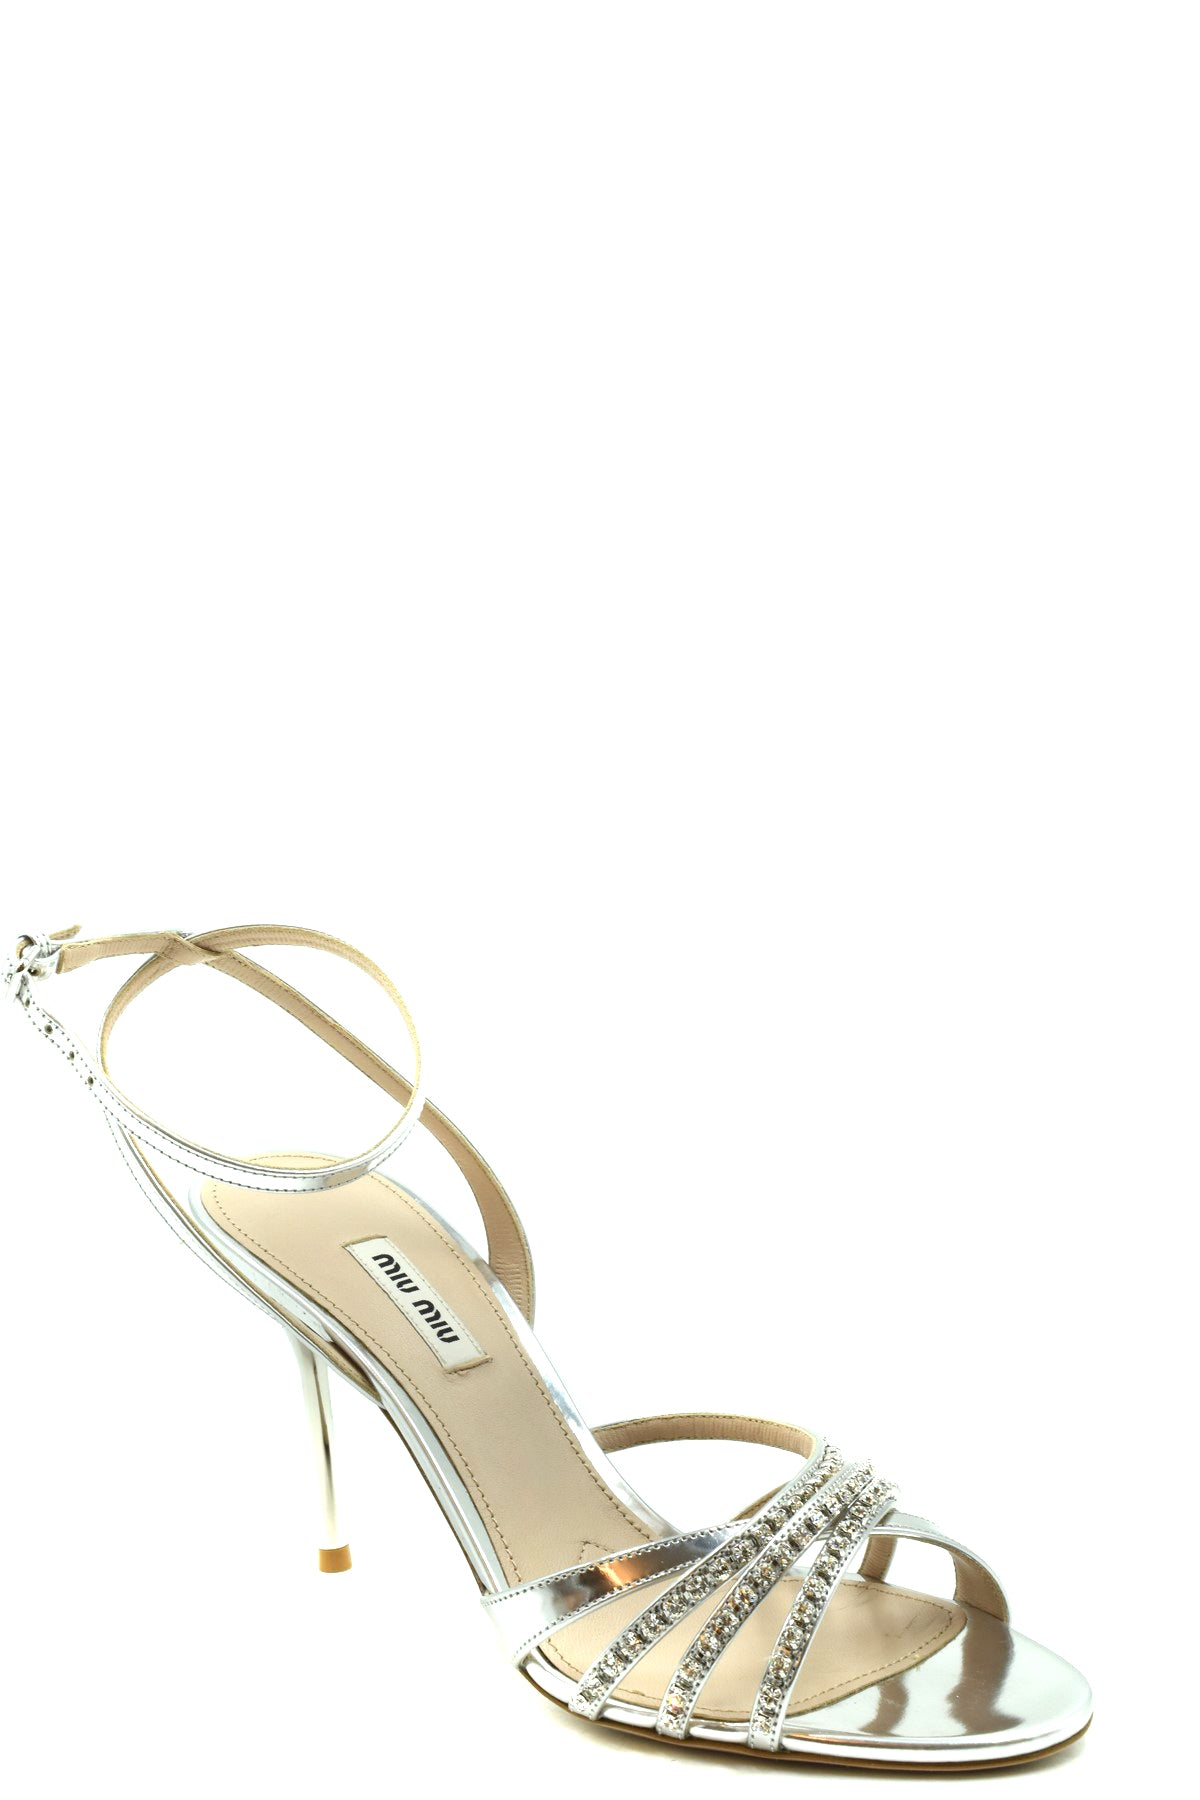 Shoes Miu Miu-Women's Fashion - Women's Shoes - Women's Sandals-Product Details Terms: New With LabelMain Color: SilverType Of Accessory: ShoesSeason: Spring / SummerMade In: ItalyGender: WomanHeel'S Height: 9 Cm Size: EuComposition: Leather 100%Year: 2020Manufacturer Part Number: 5X994C-Keyomi-Sook